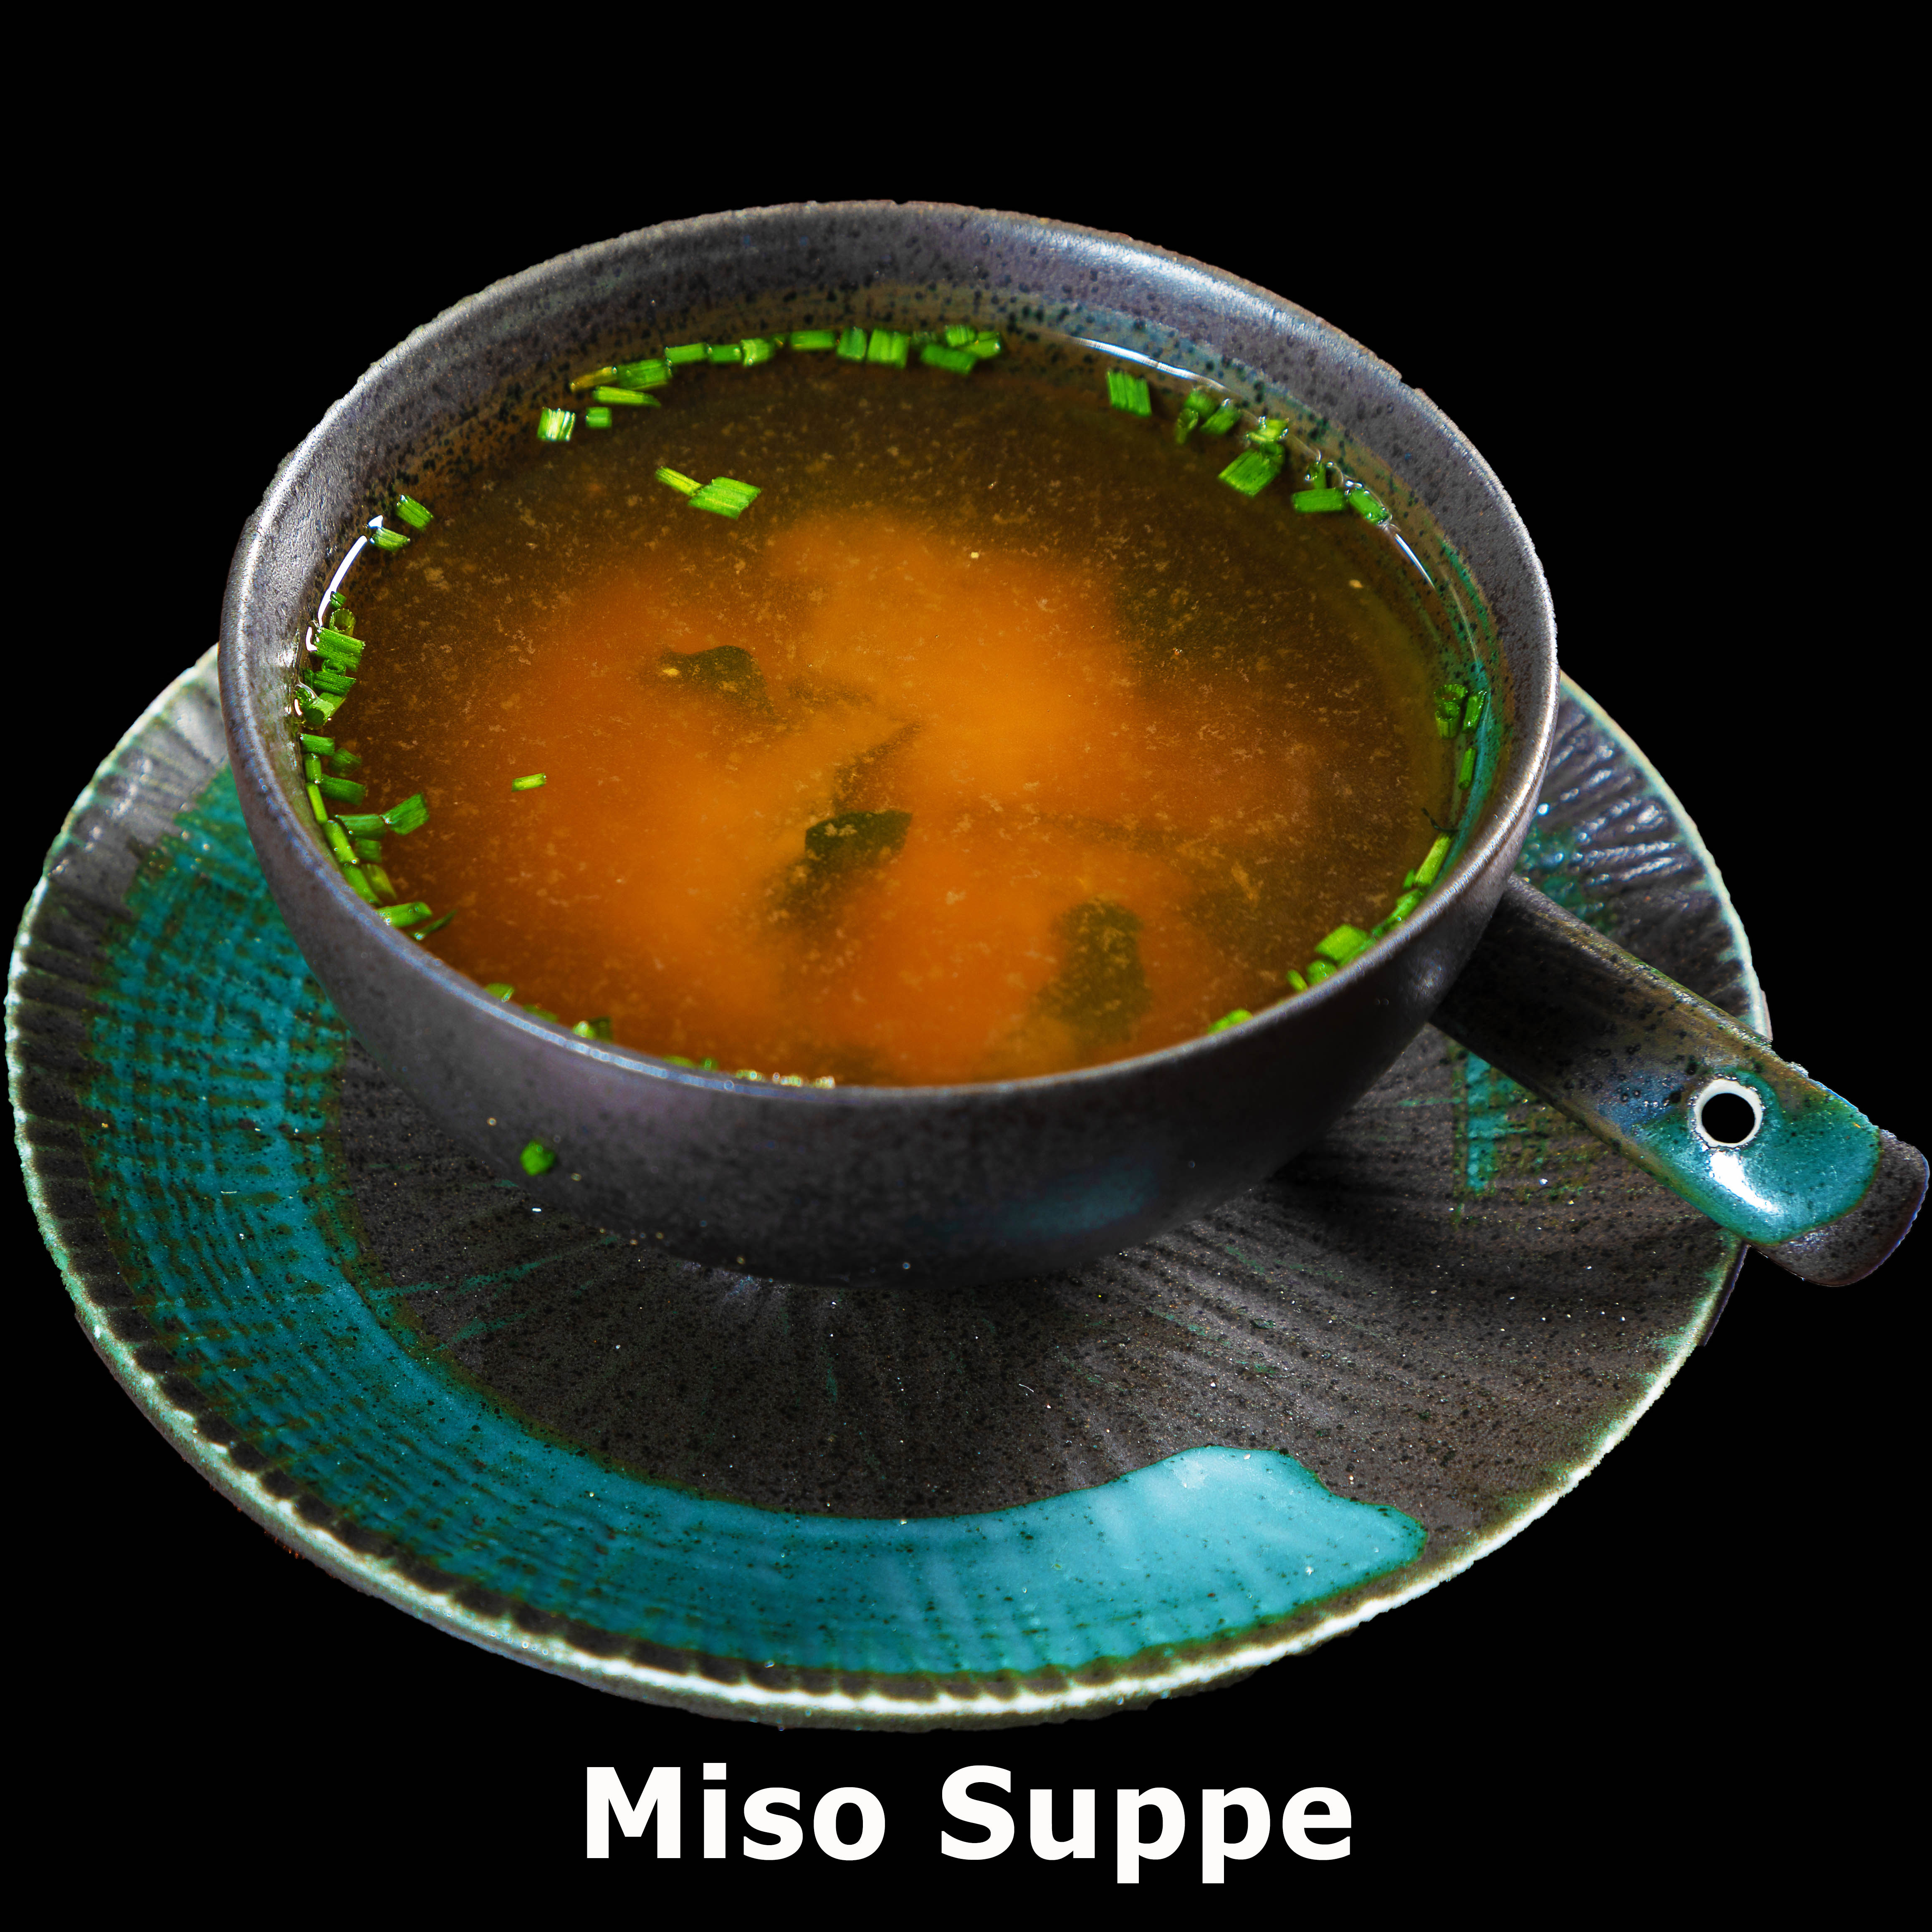 2. Miso Suppe